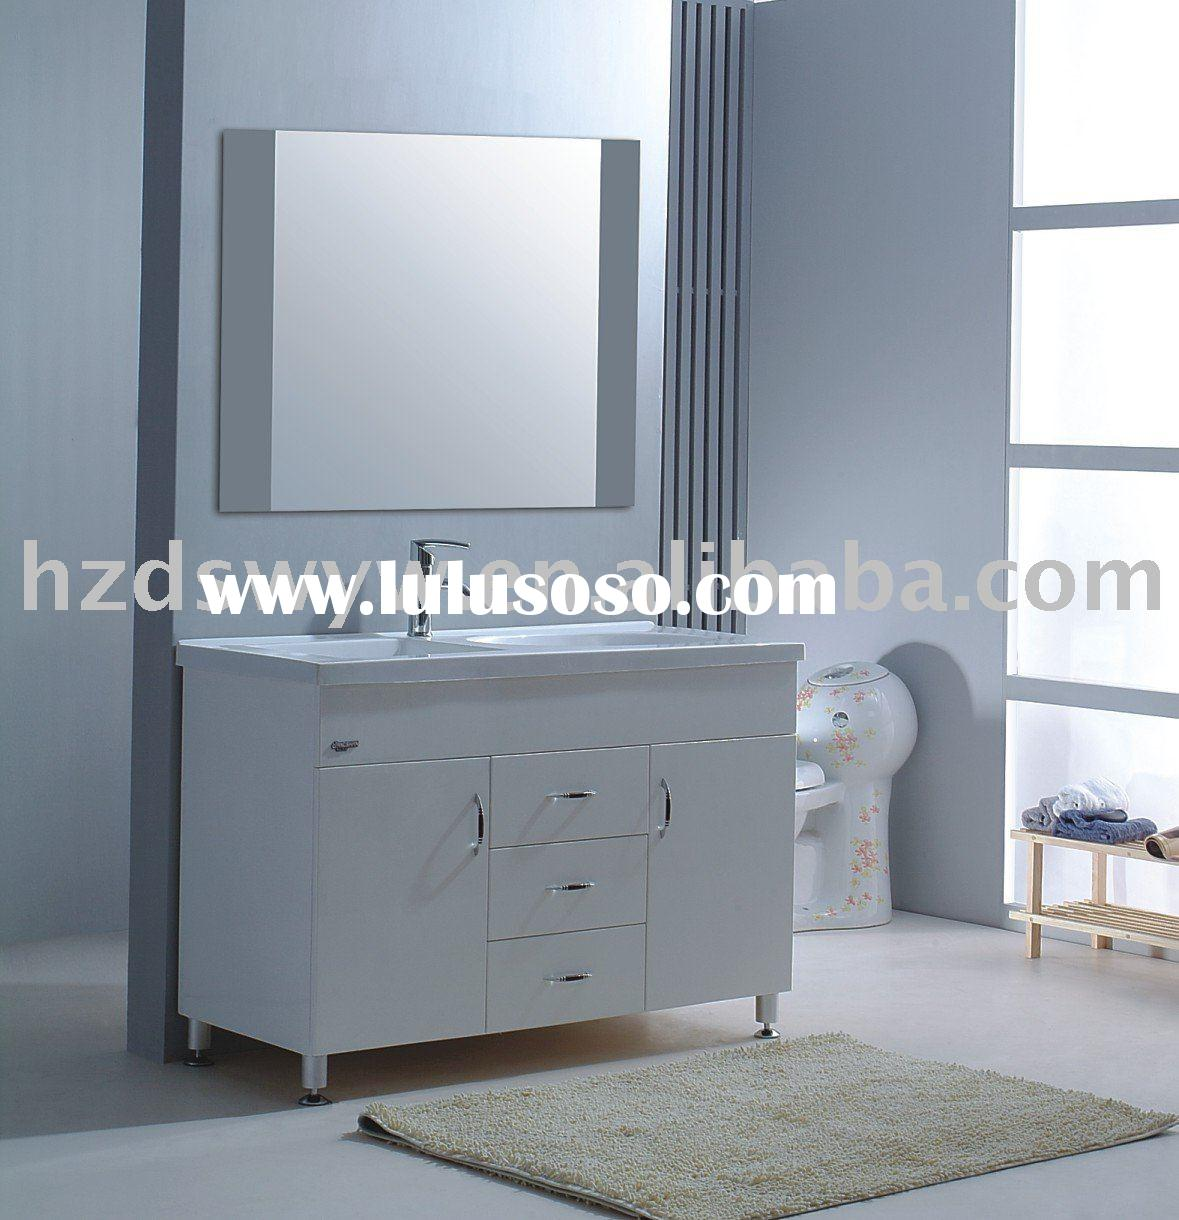 Wall Mounted Corner Bathroom Mirror Cabinet Symdf50 For Sale Price China Manufacturer